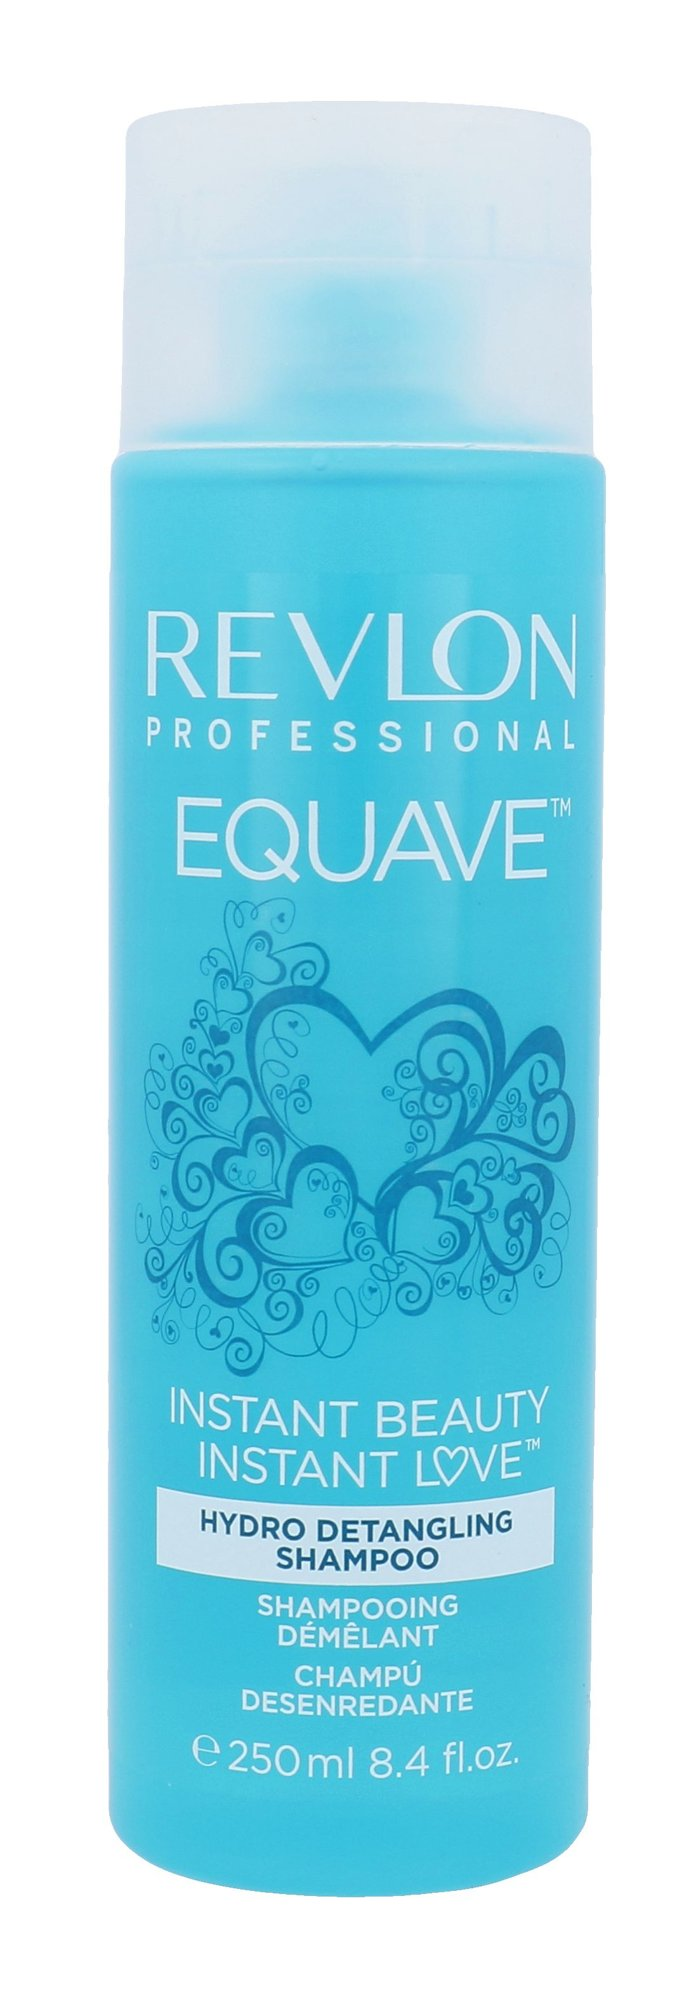 Revlon Professional Equave Cosmetic 250ml